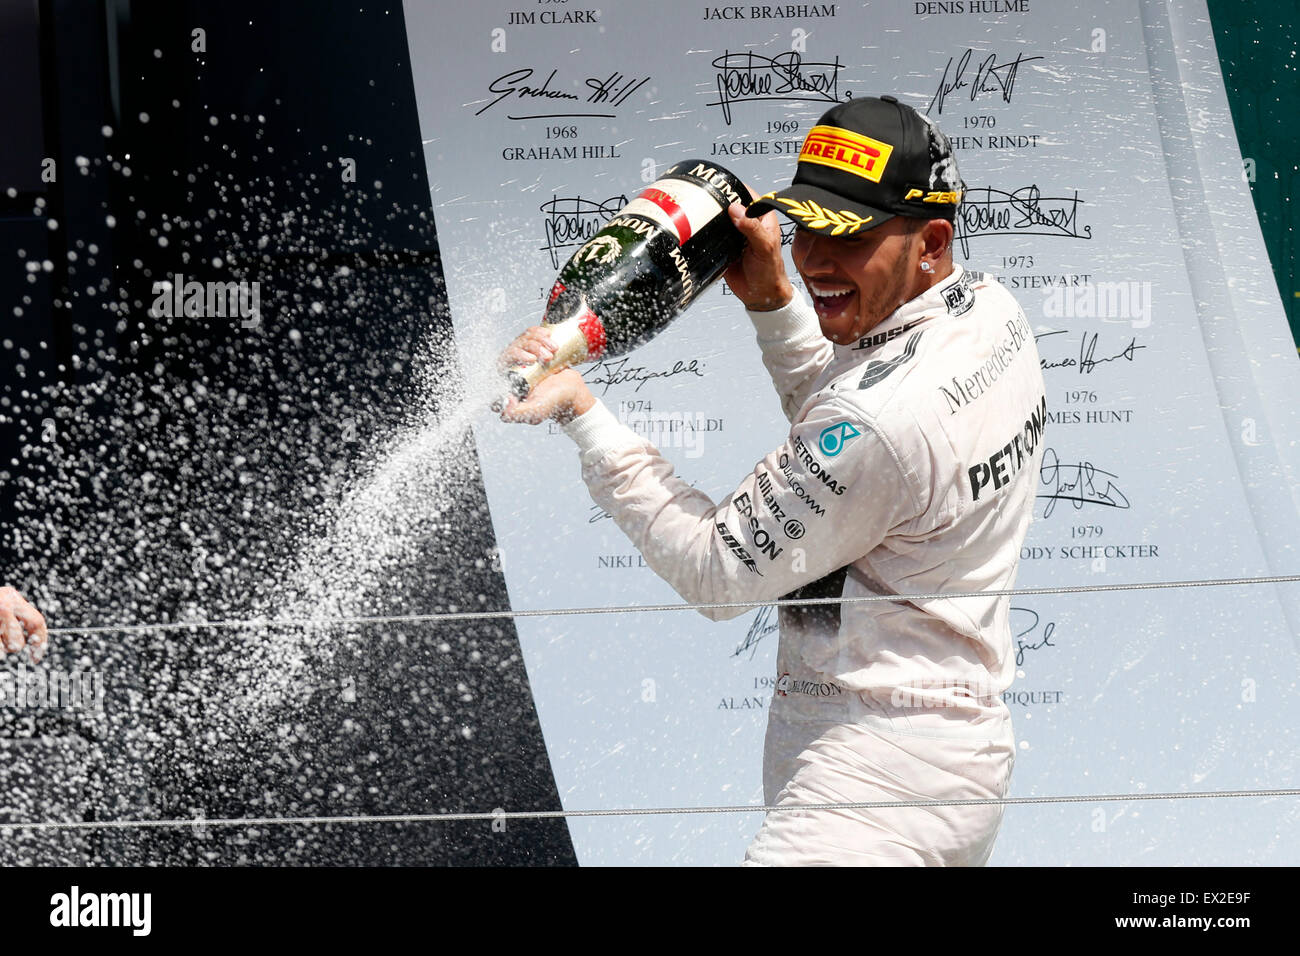 Silverstone, UK. 5 juillet, 2015. Sport Automobile : Championnat du Monde de Formule 1 de la FIA 2015, Grand Photo Stock